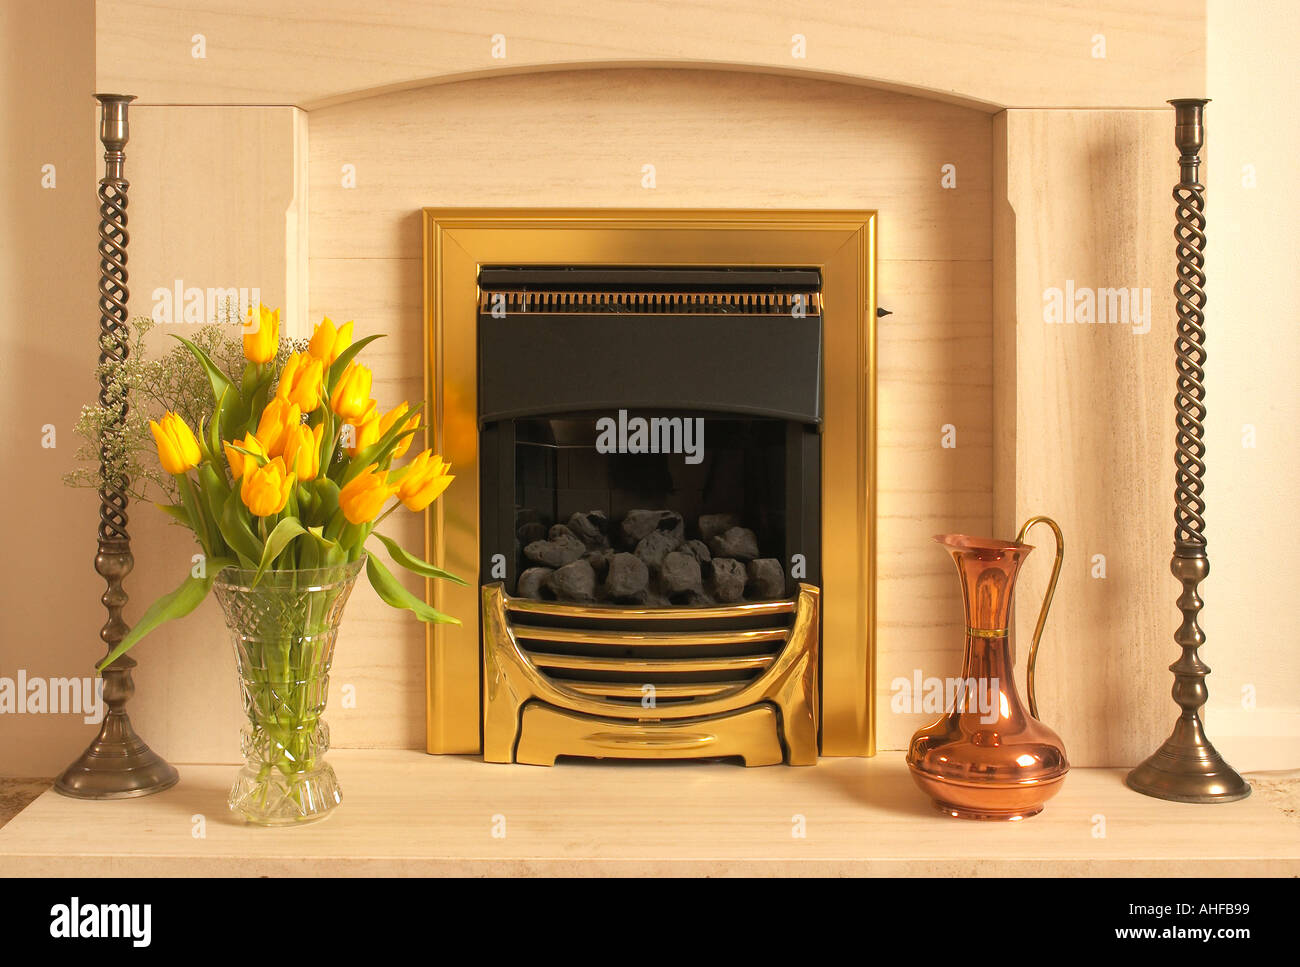 Domestic Fireplace Display - Stock Image